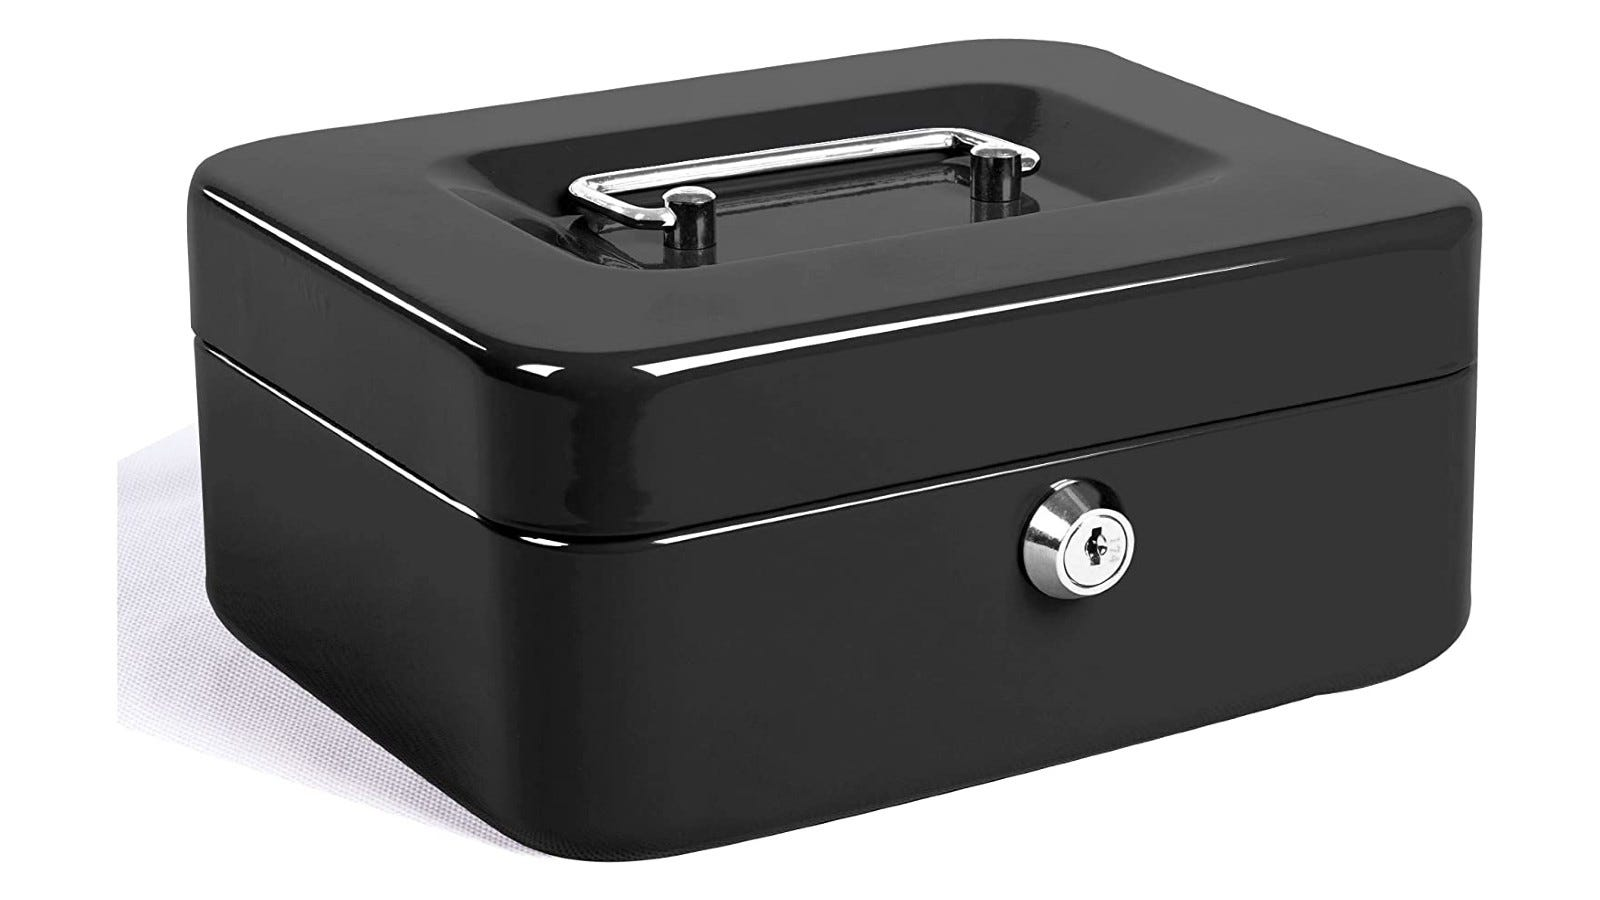 A shiny, durable black metal cash box with a silver handle and lock